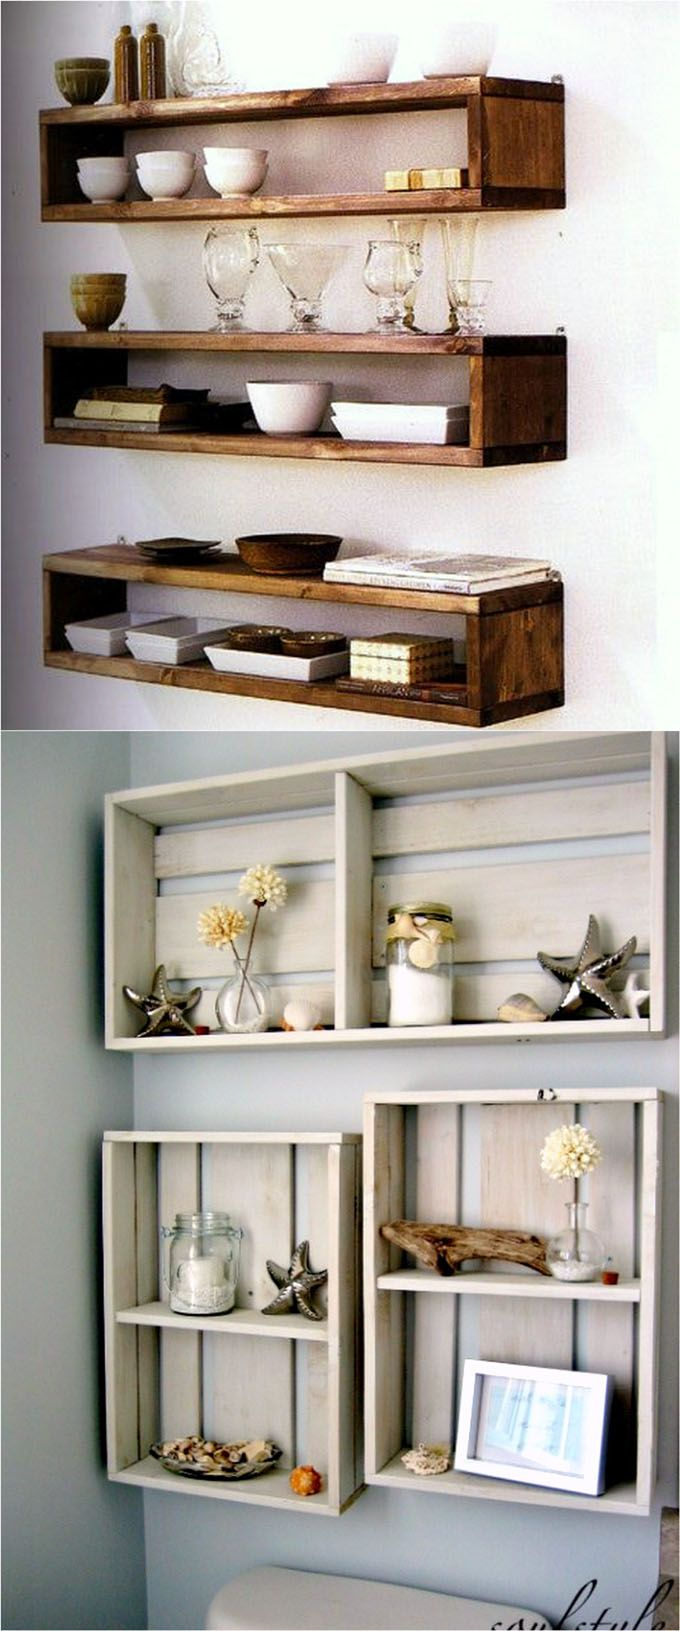 easy and stylish diy floating shelves wall projects box ideas piece rainbow under shelf bracket racking drawer walnut tier garage storage design entryway bench coat rack ikea